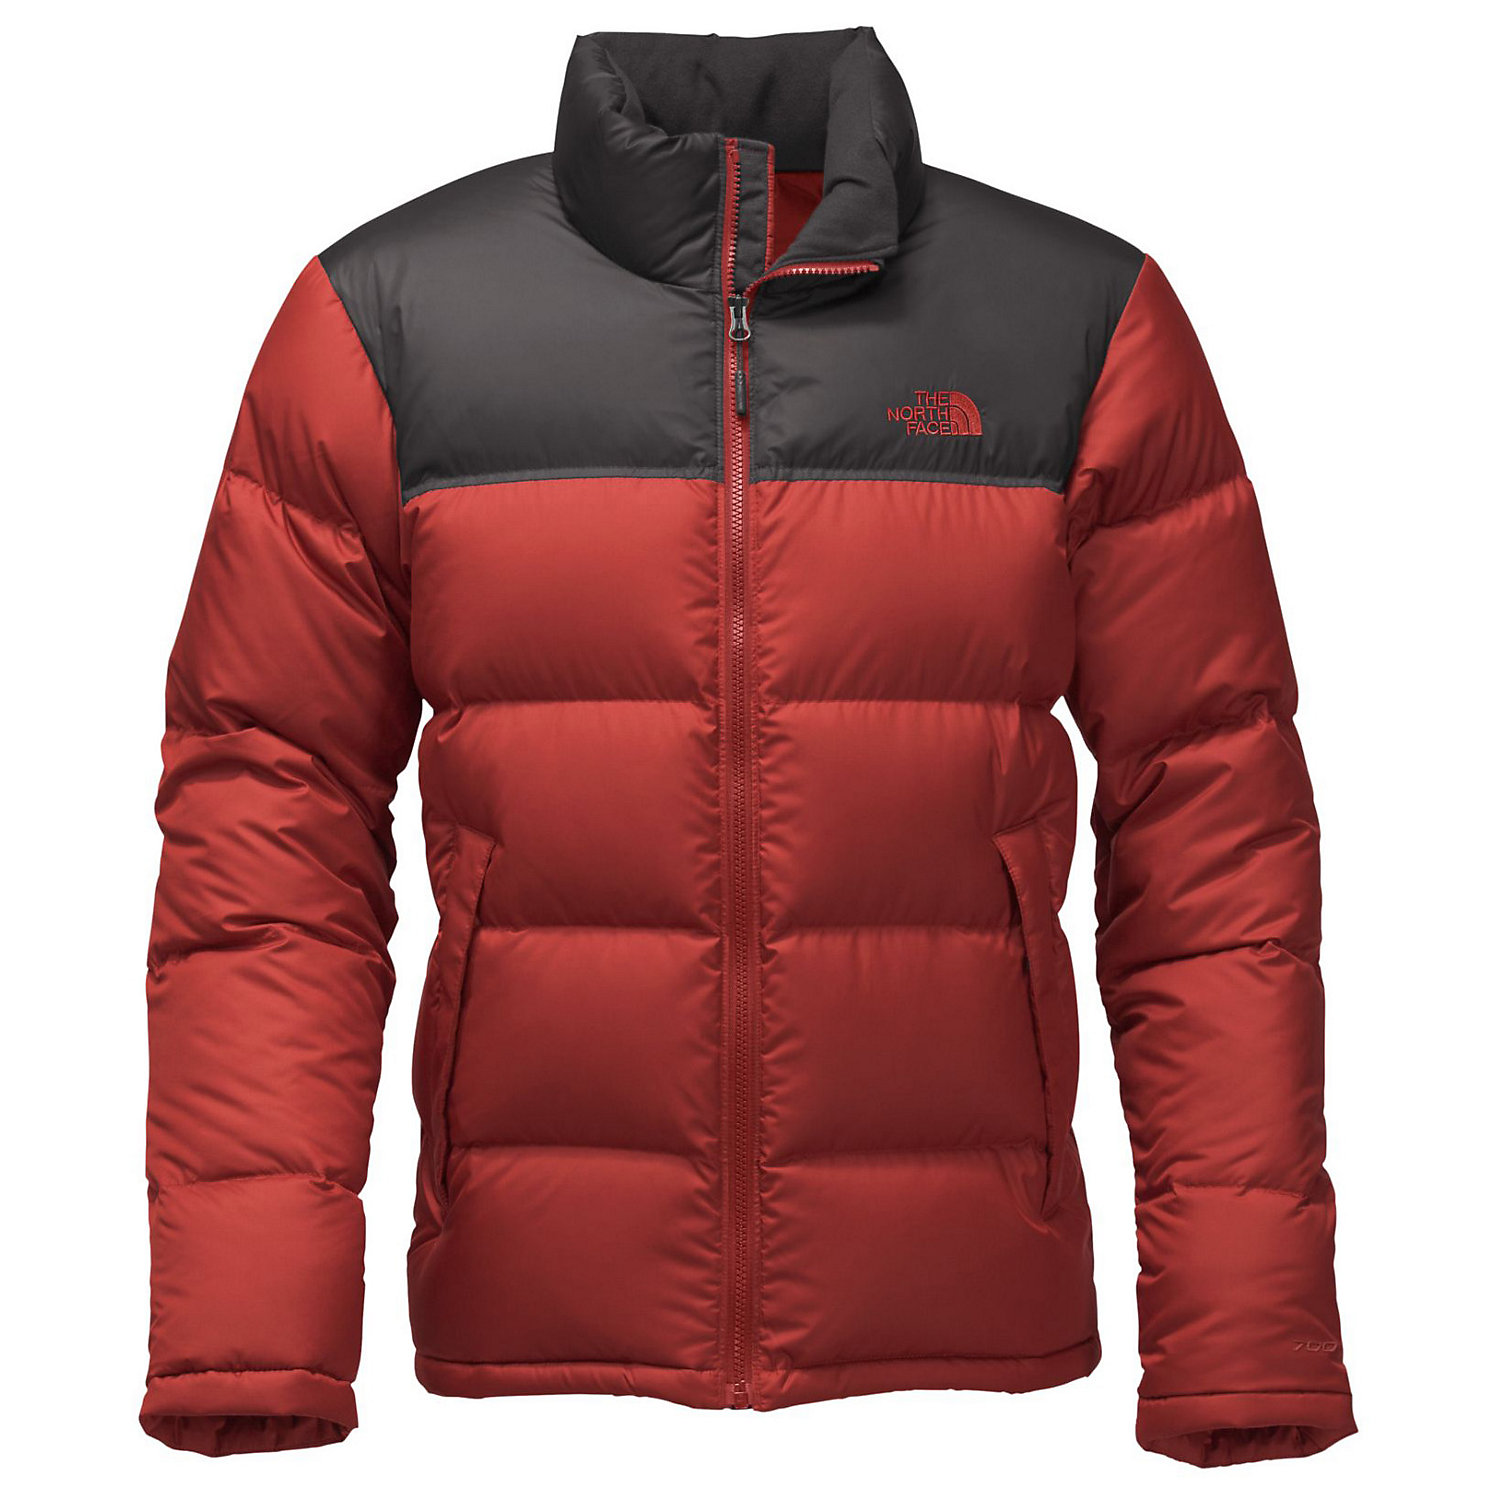 6f8ce793c2 The North Face Men s Nuptse Jacket - Moosejaw